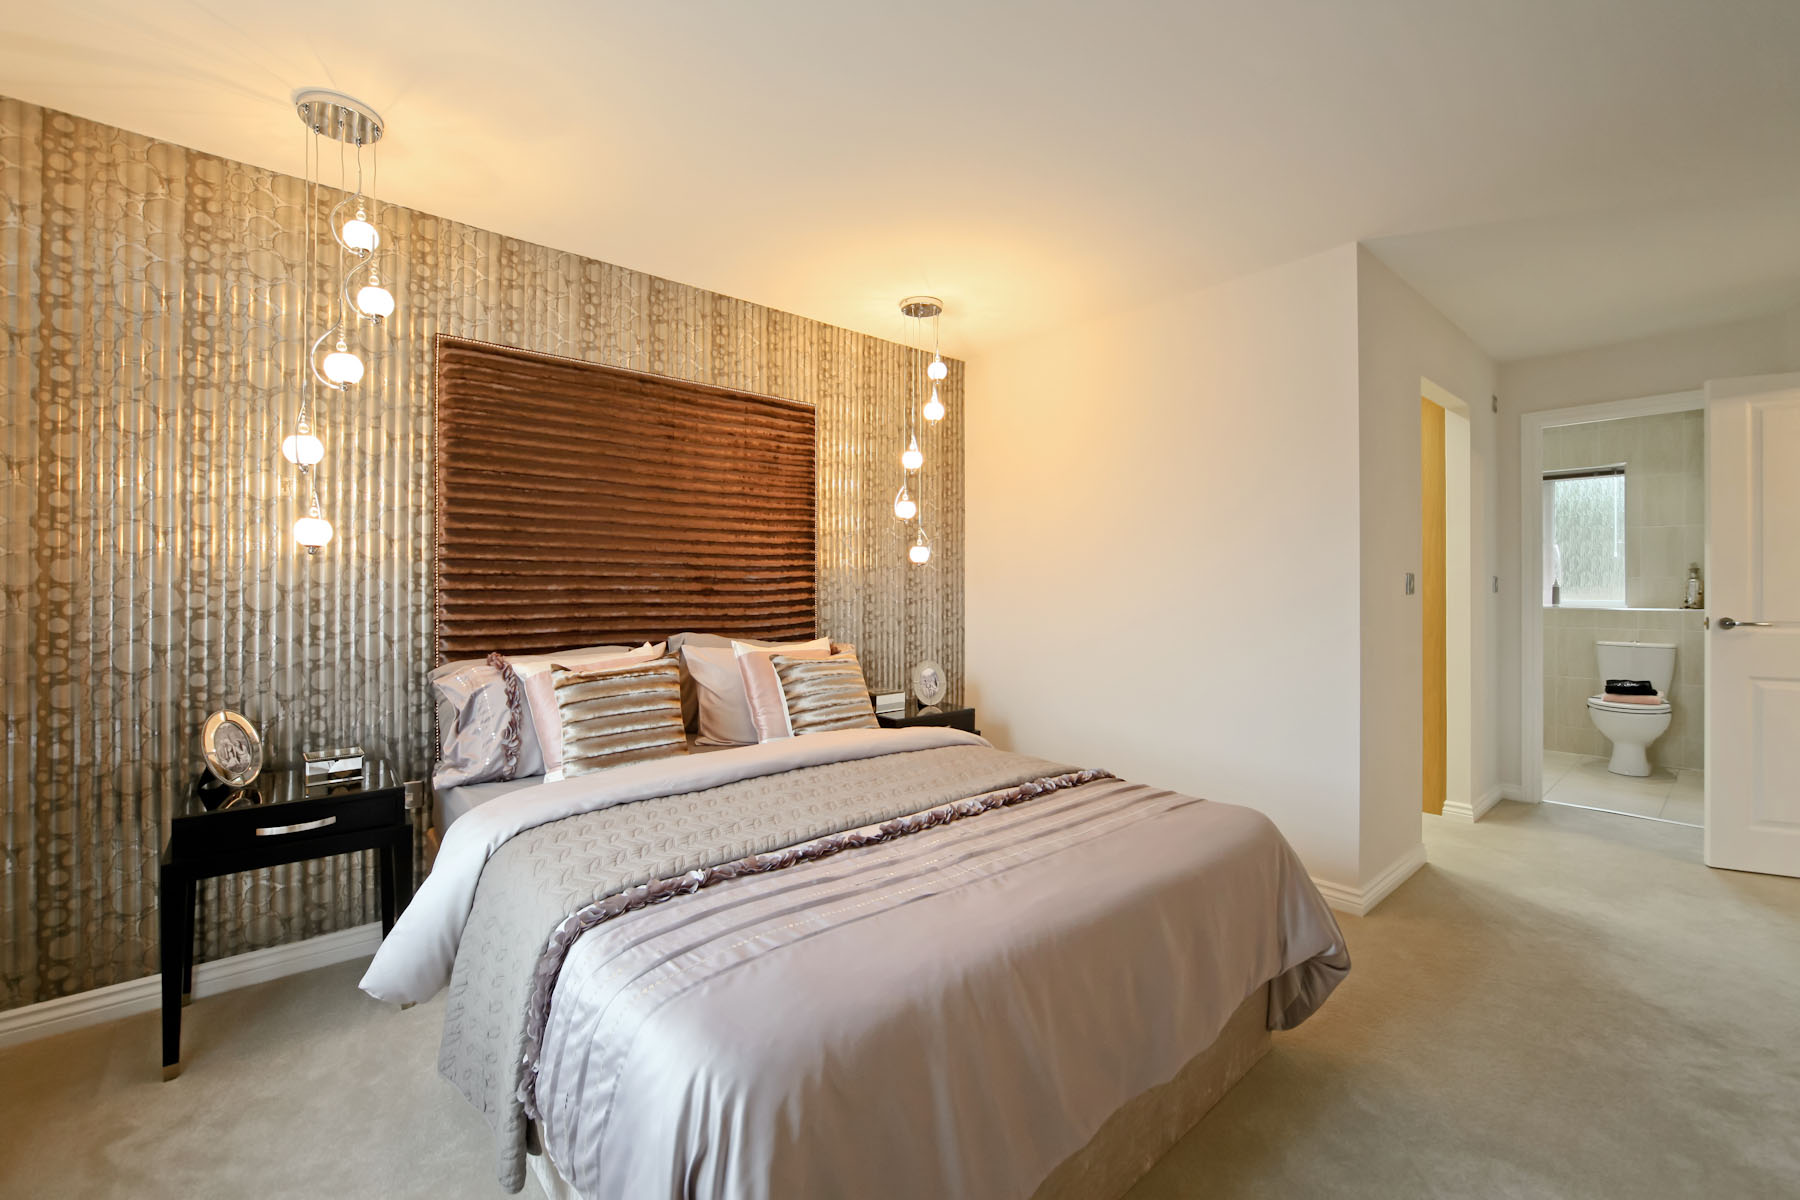 Wilton master bedroom with en suite